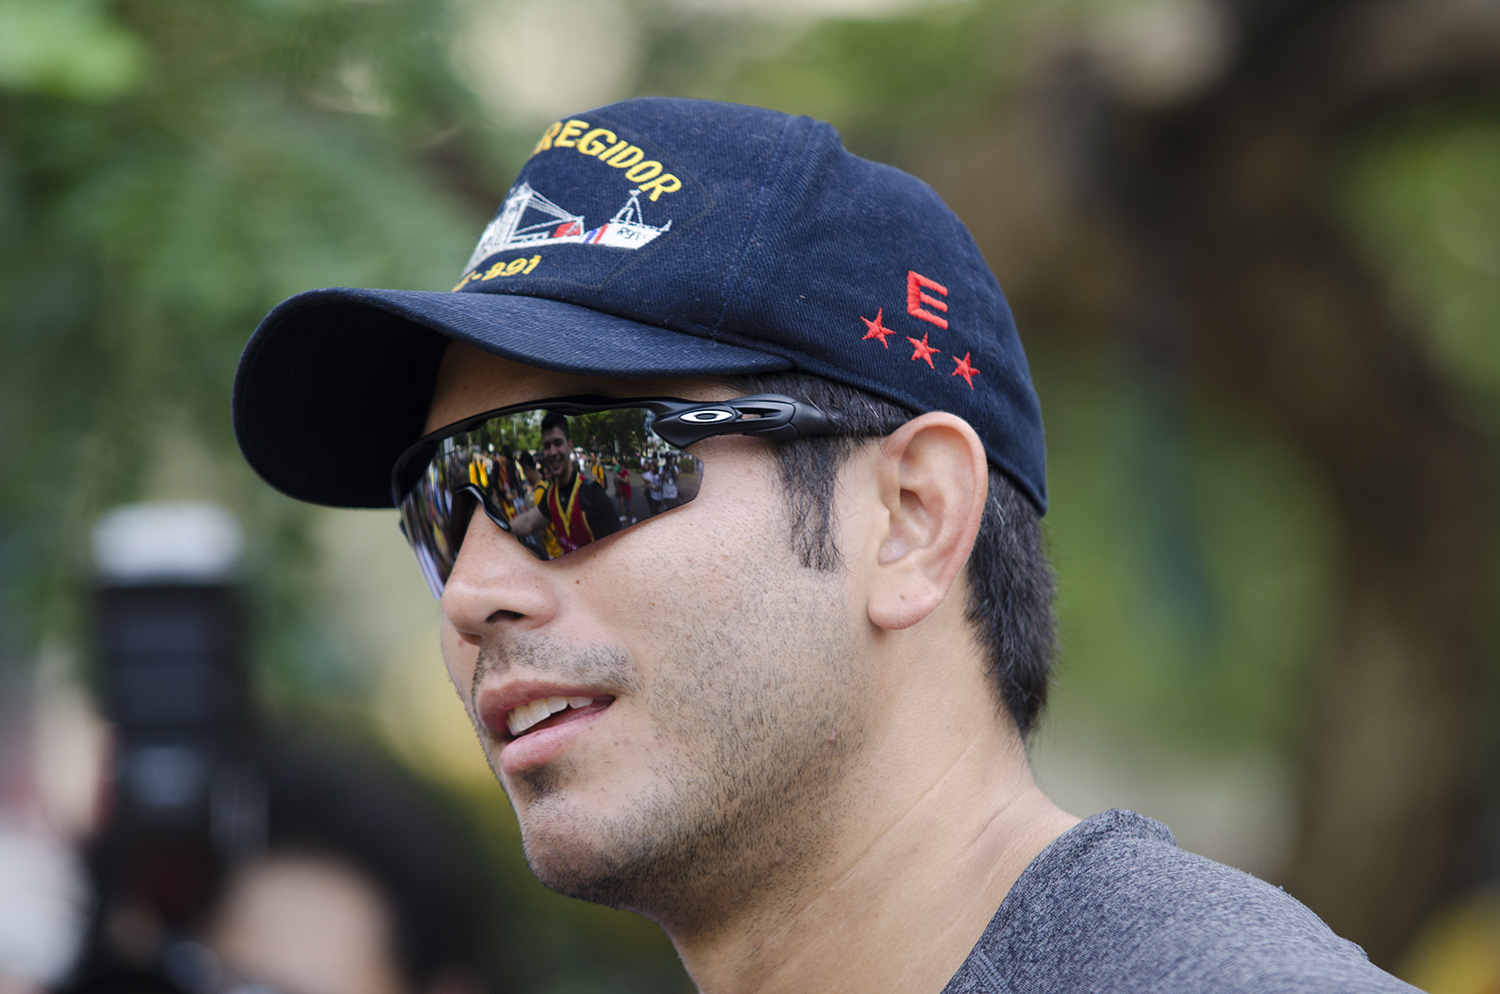 Gerald Anderson Photo by Rob Reyes/Rappler